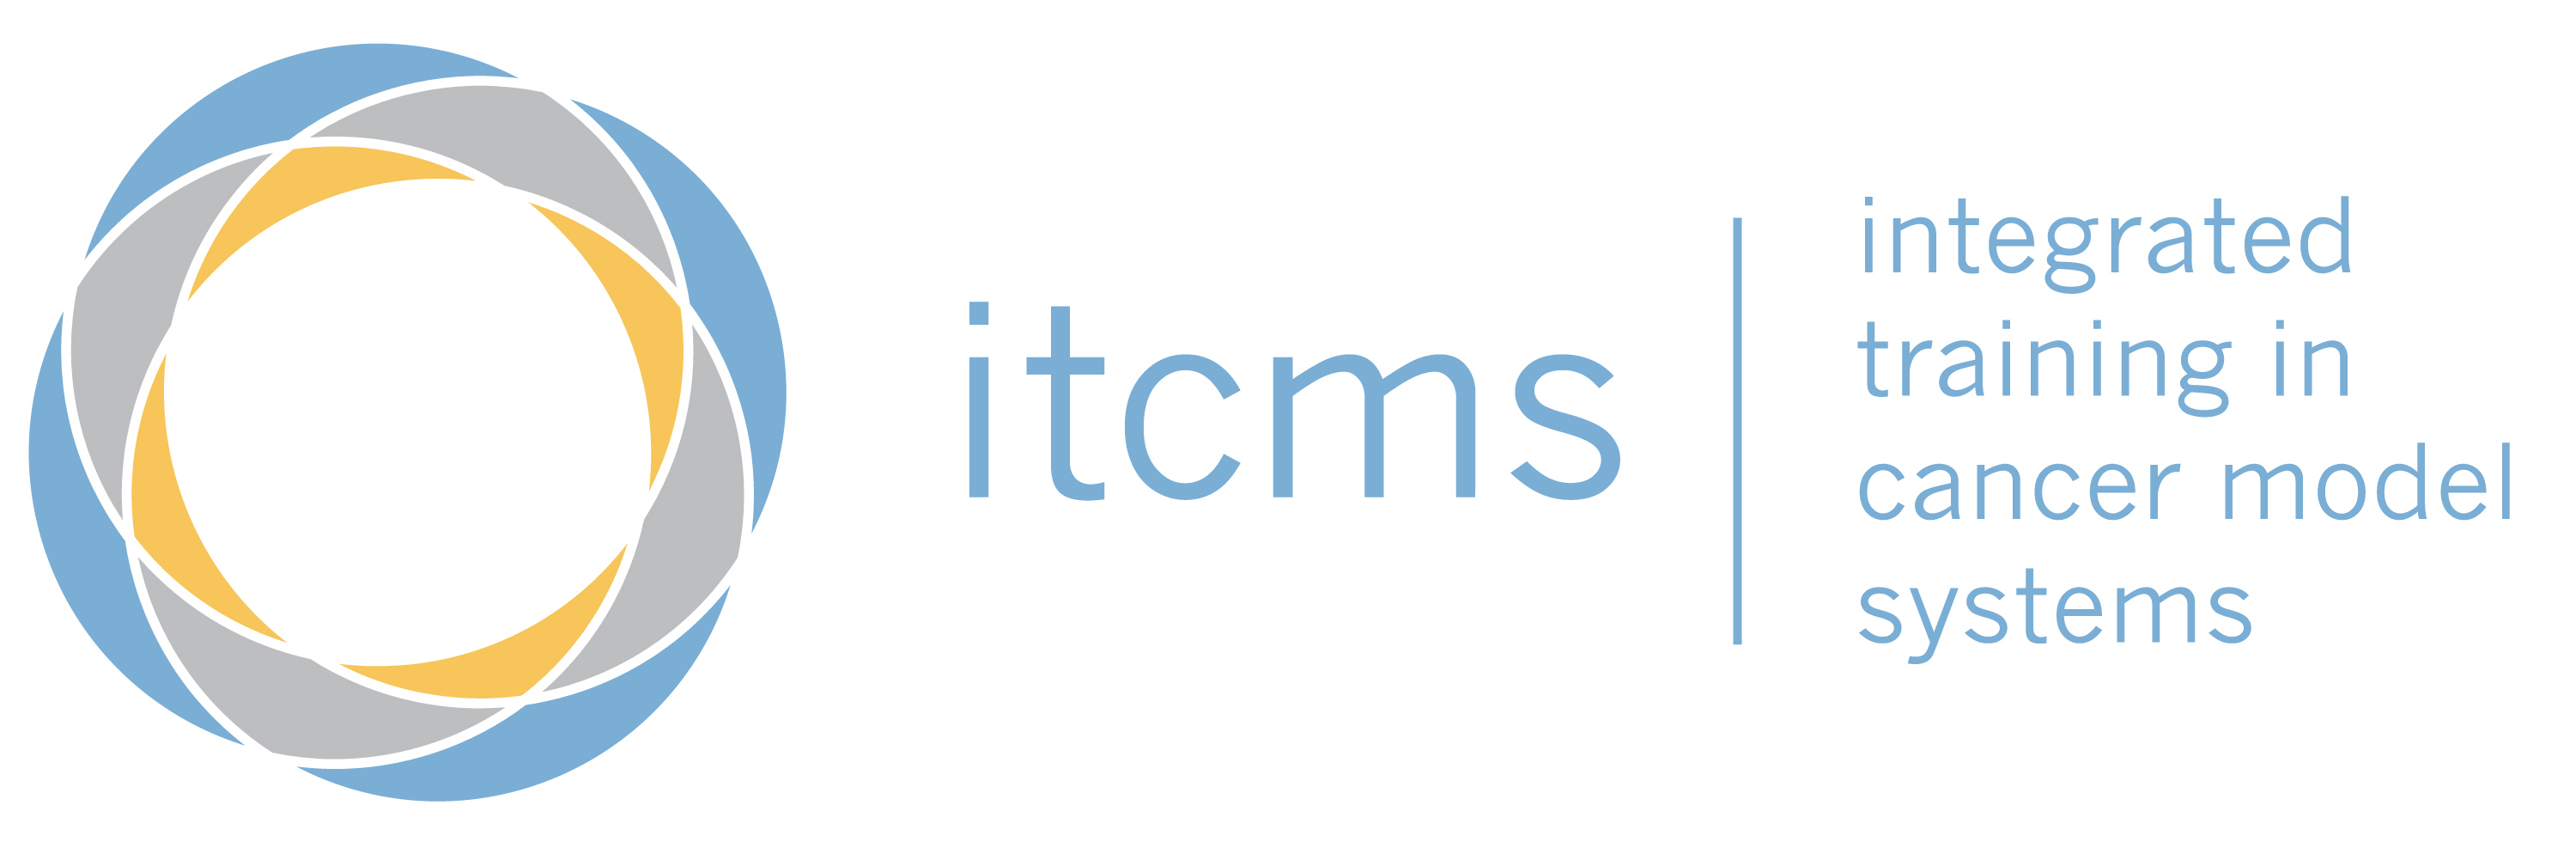 Integrated Training in Cancer Model Systems (ITCMS)